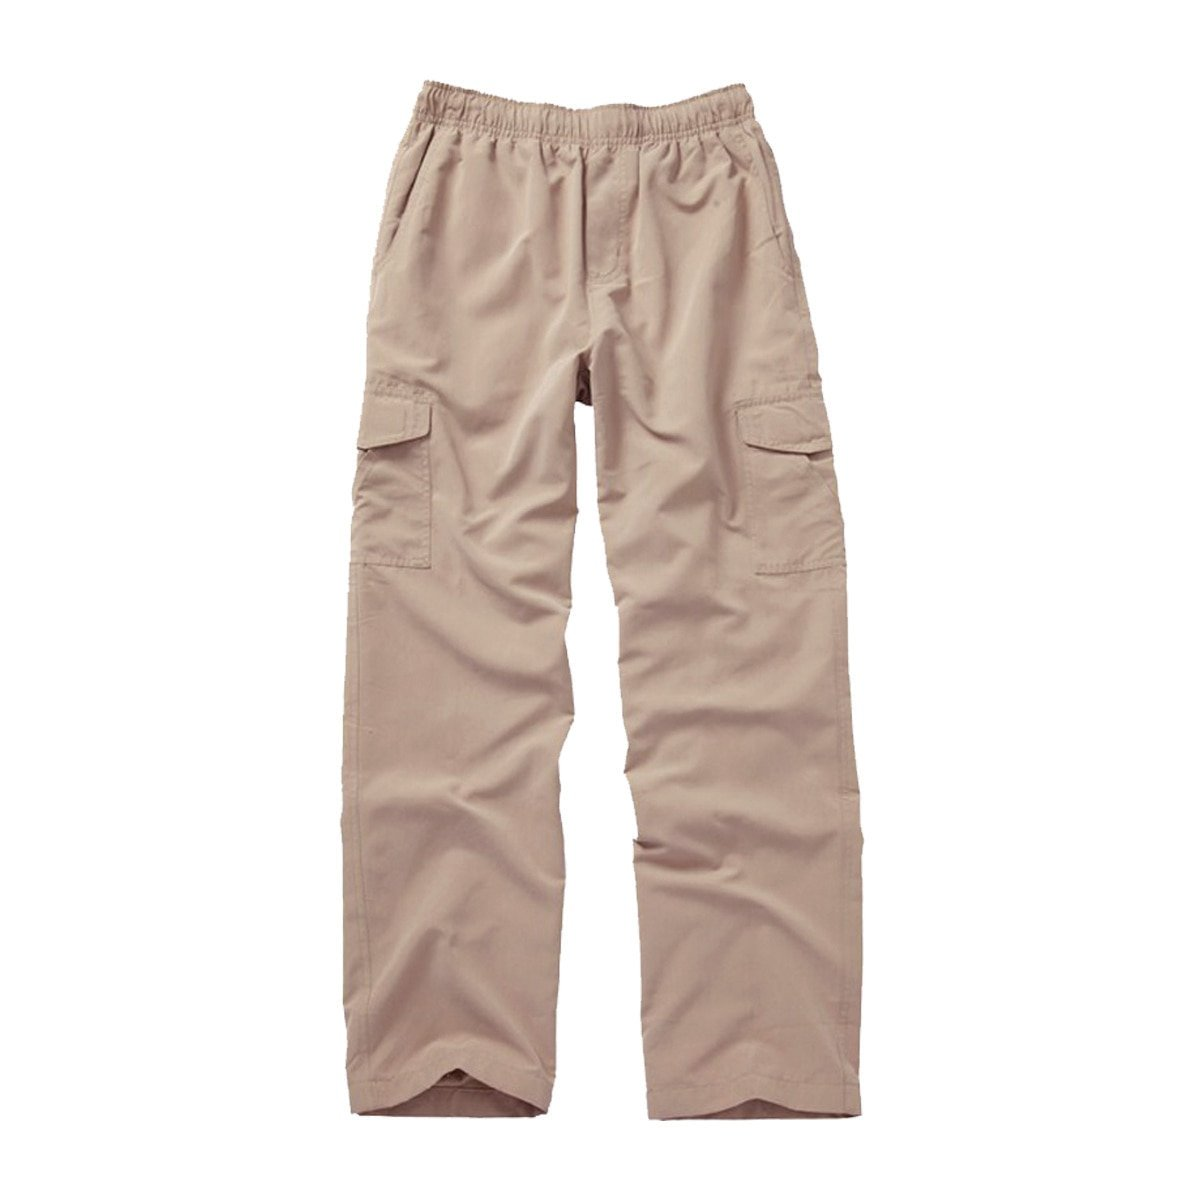 Wes and Willy Khaki Pull On Cargo Pant